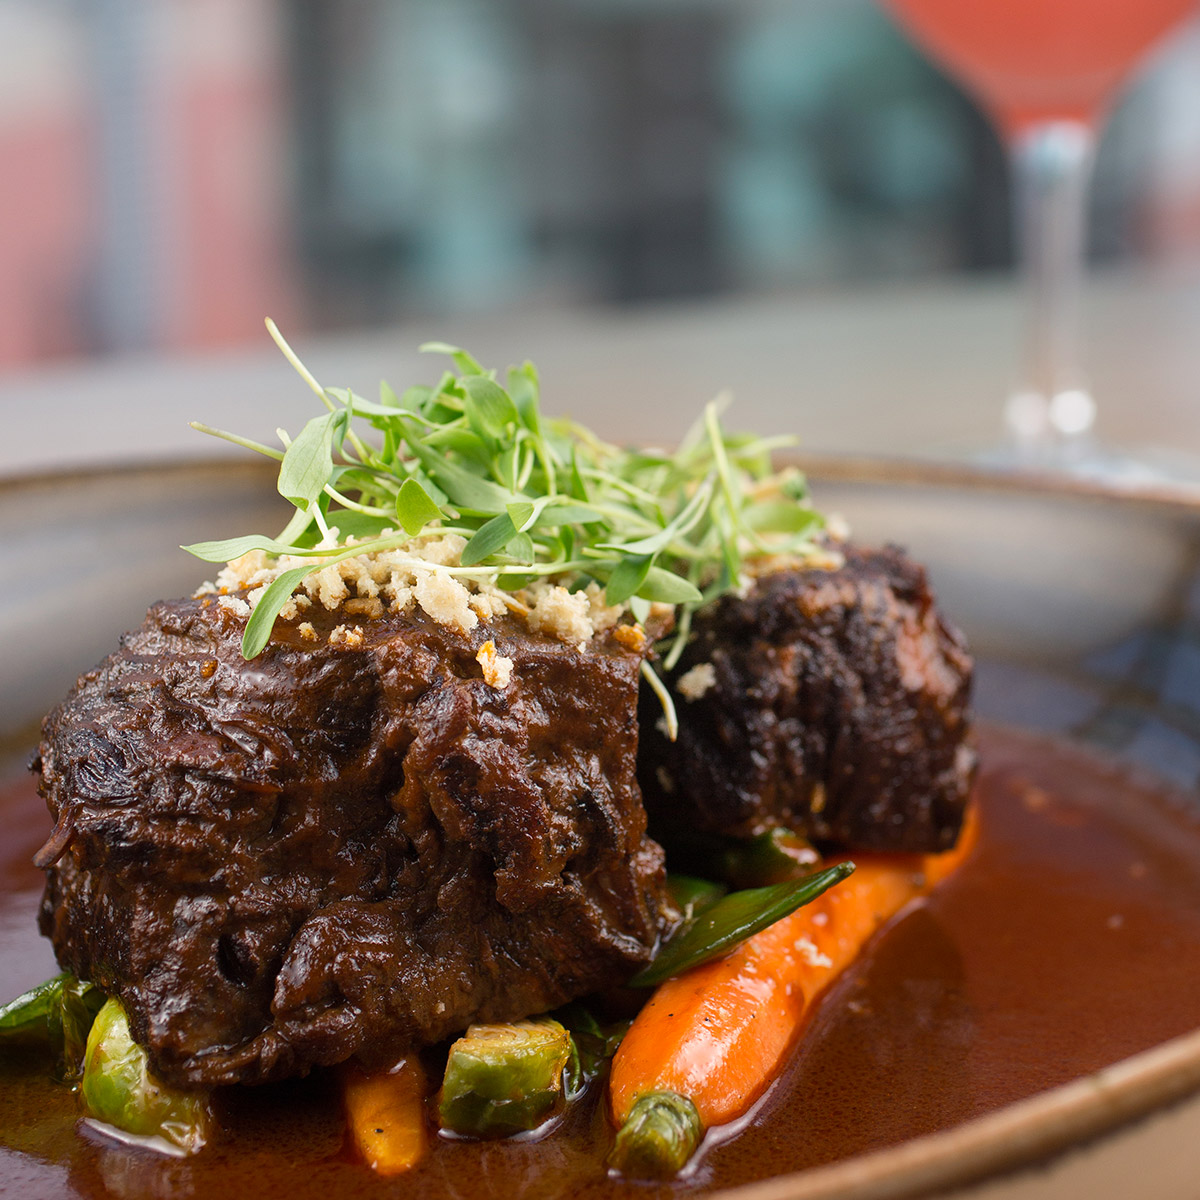 Shiraz Food suggestion - Braised Shortrib